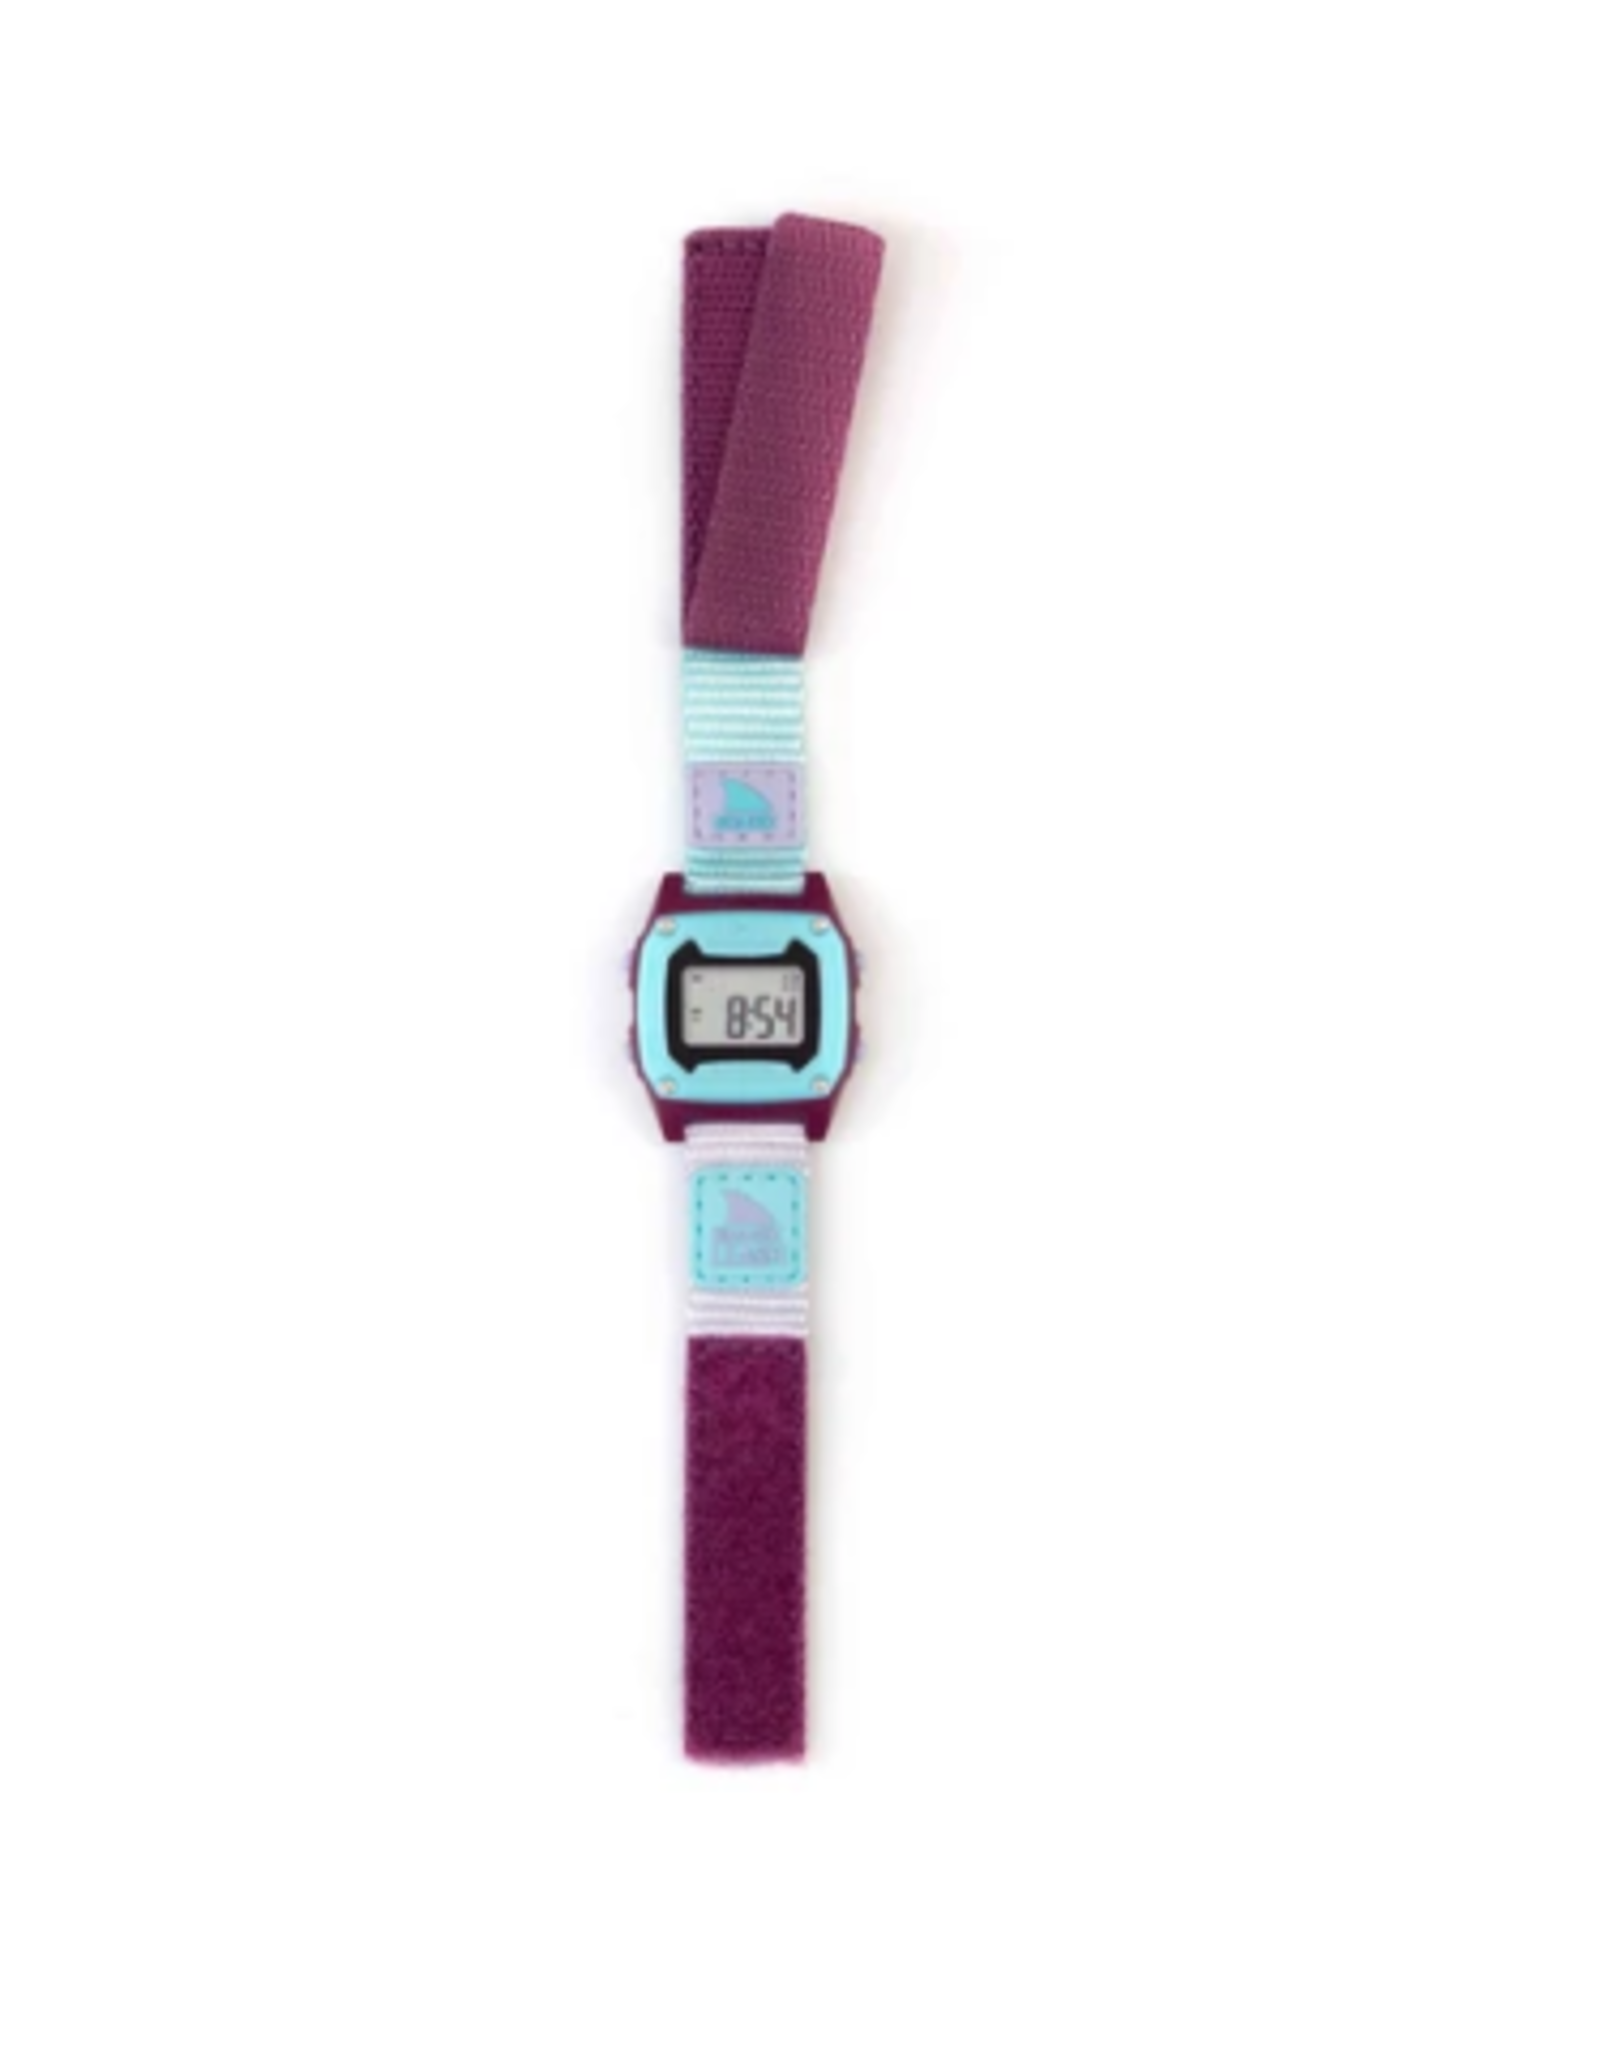 FREESTYLE FREESTYLE SHARK MINI LEASH BLUE RASPBERRY WATCH